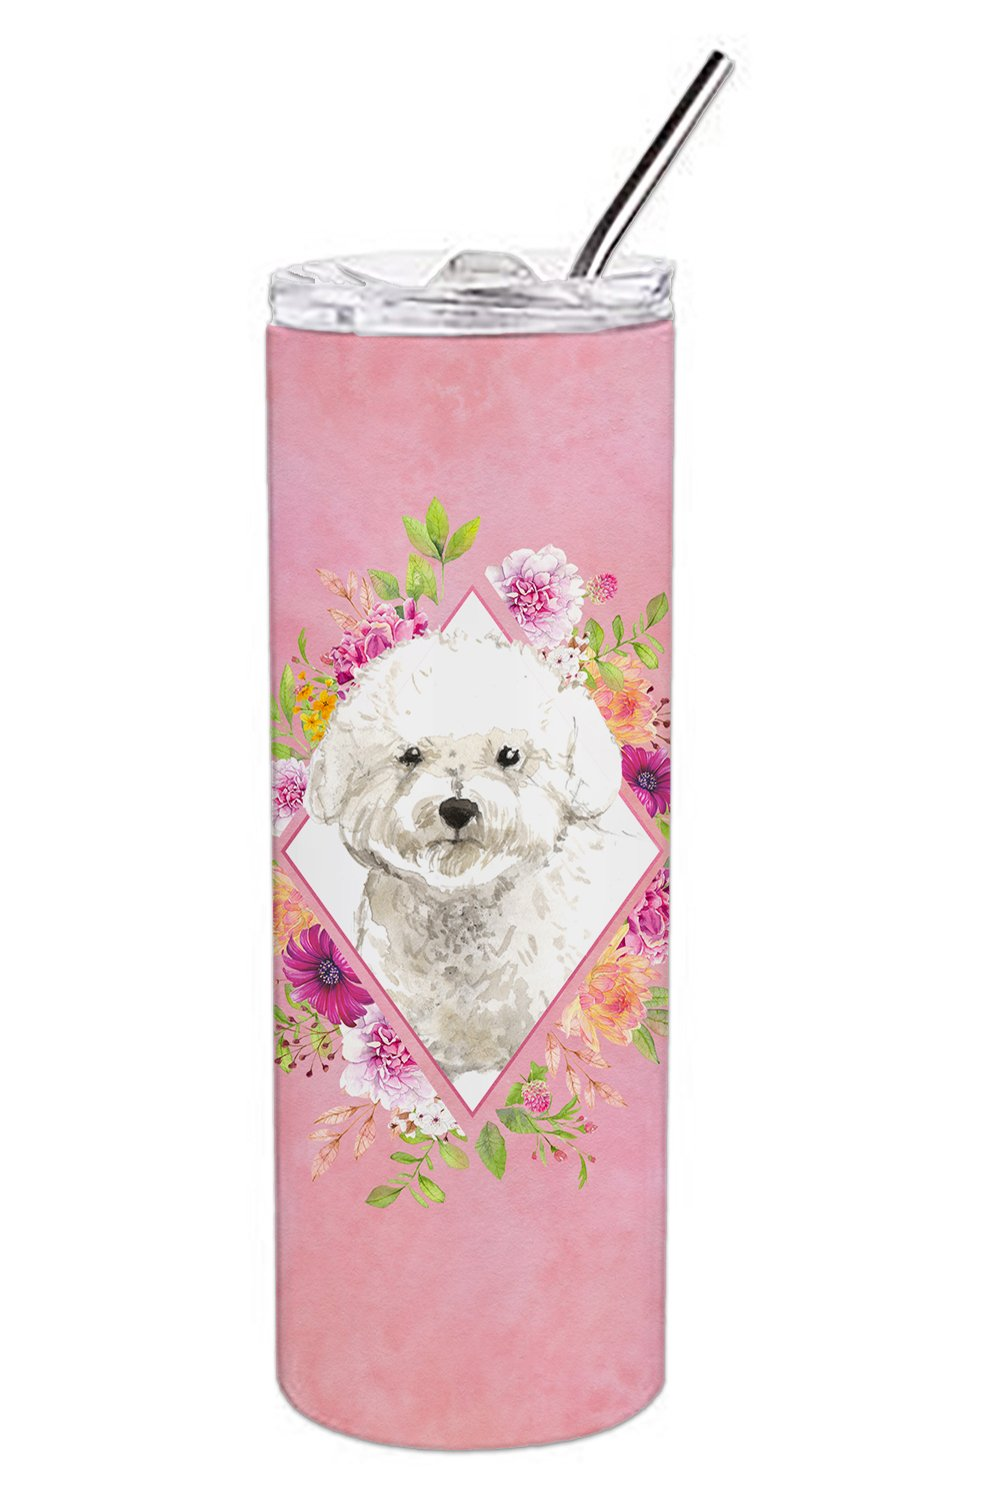 Bichon Frise Pink Flowers Double Walled Stainless Steel 20 oz Skinny Tumbler CK4263TBL20 by Caroline's Treasures